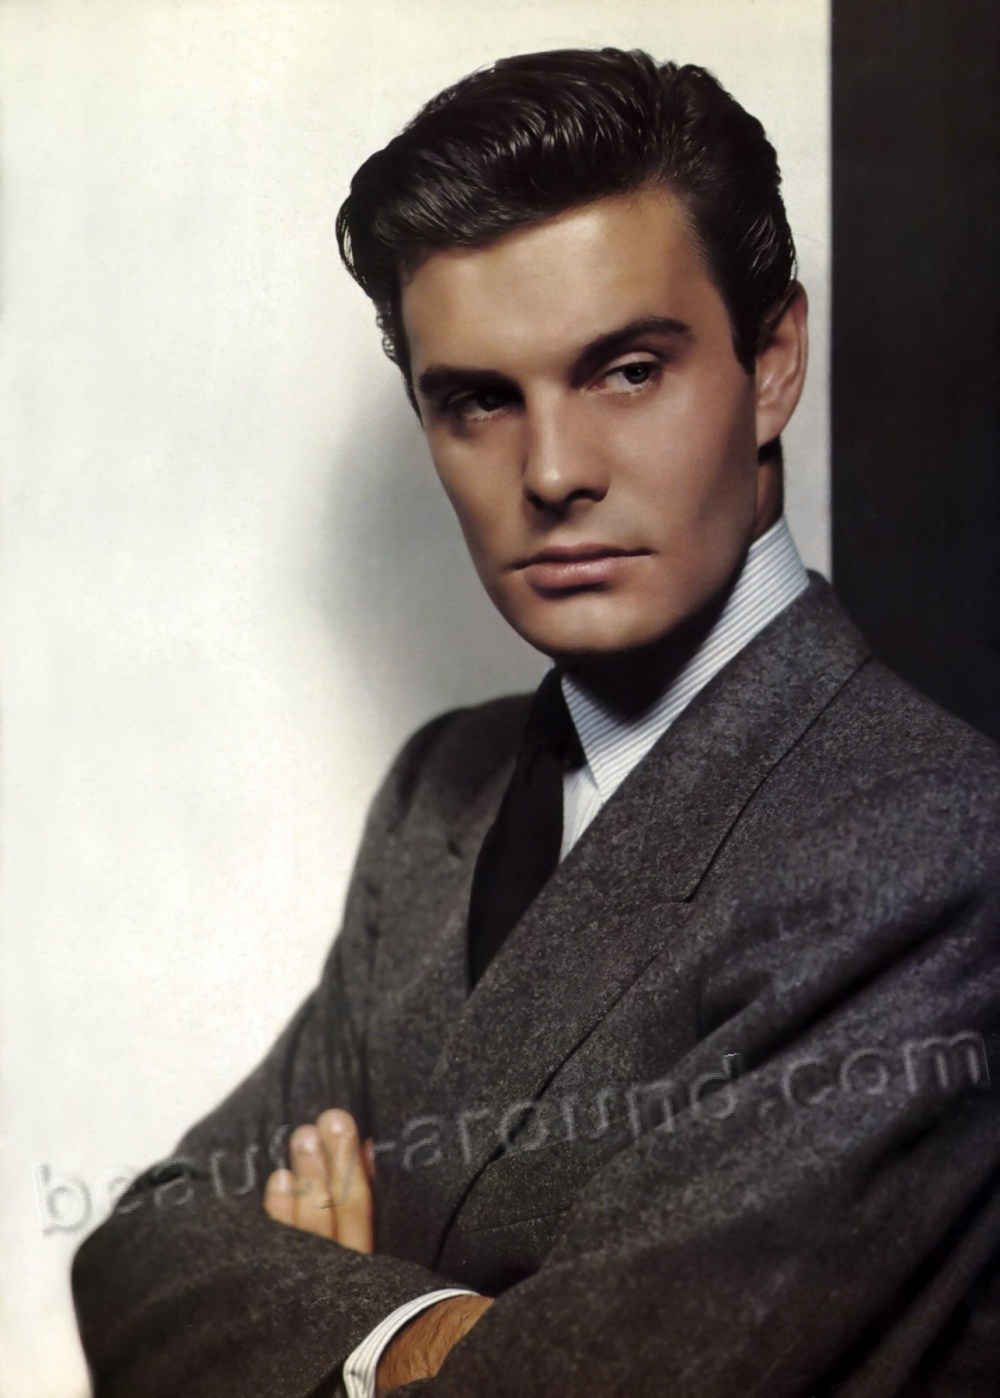 Louis Jourdan famous handsome french actor